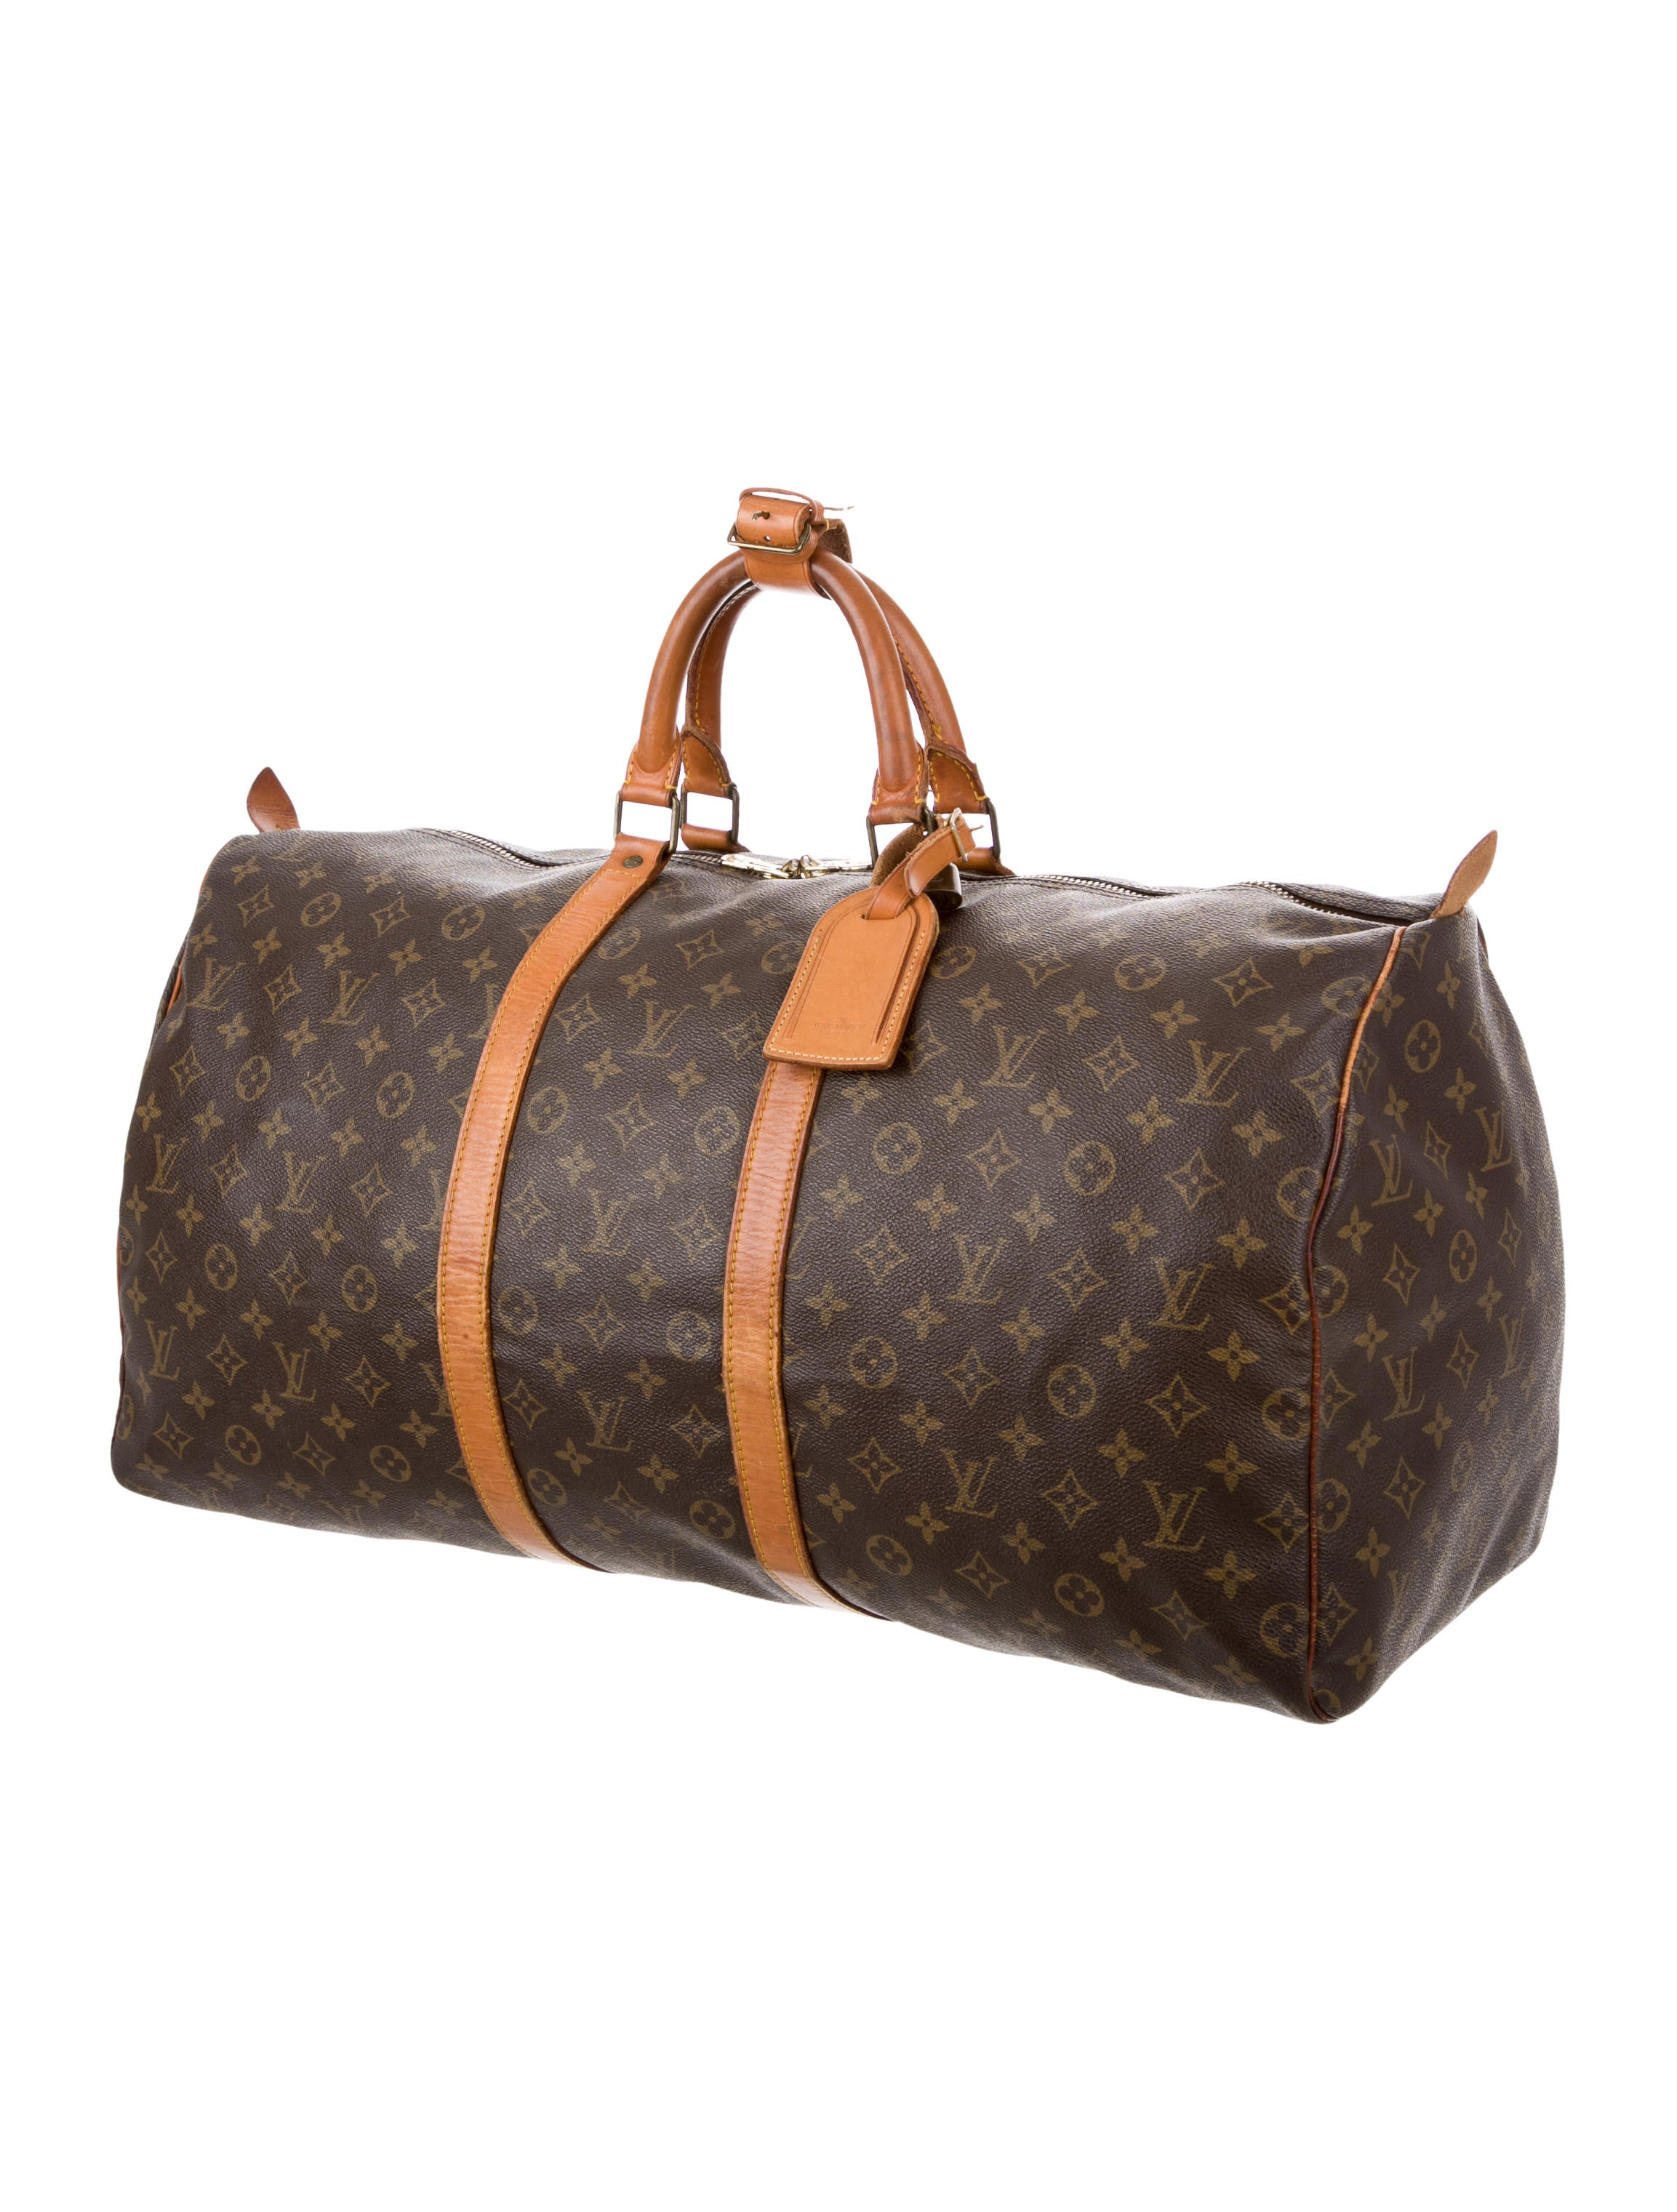 louis vuitton monogram keepall 55 bags lou116323 the realreal. Black Bedroom Furniture Sets. Home Design Ideas